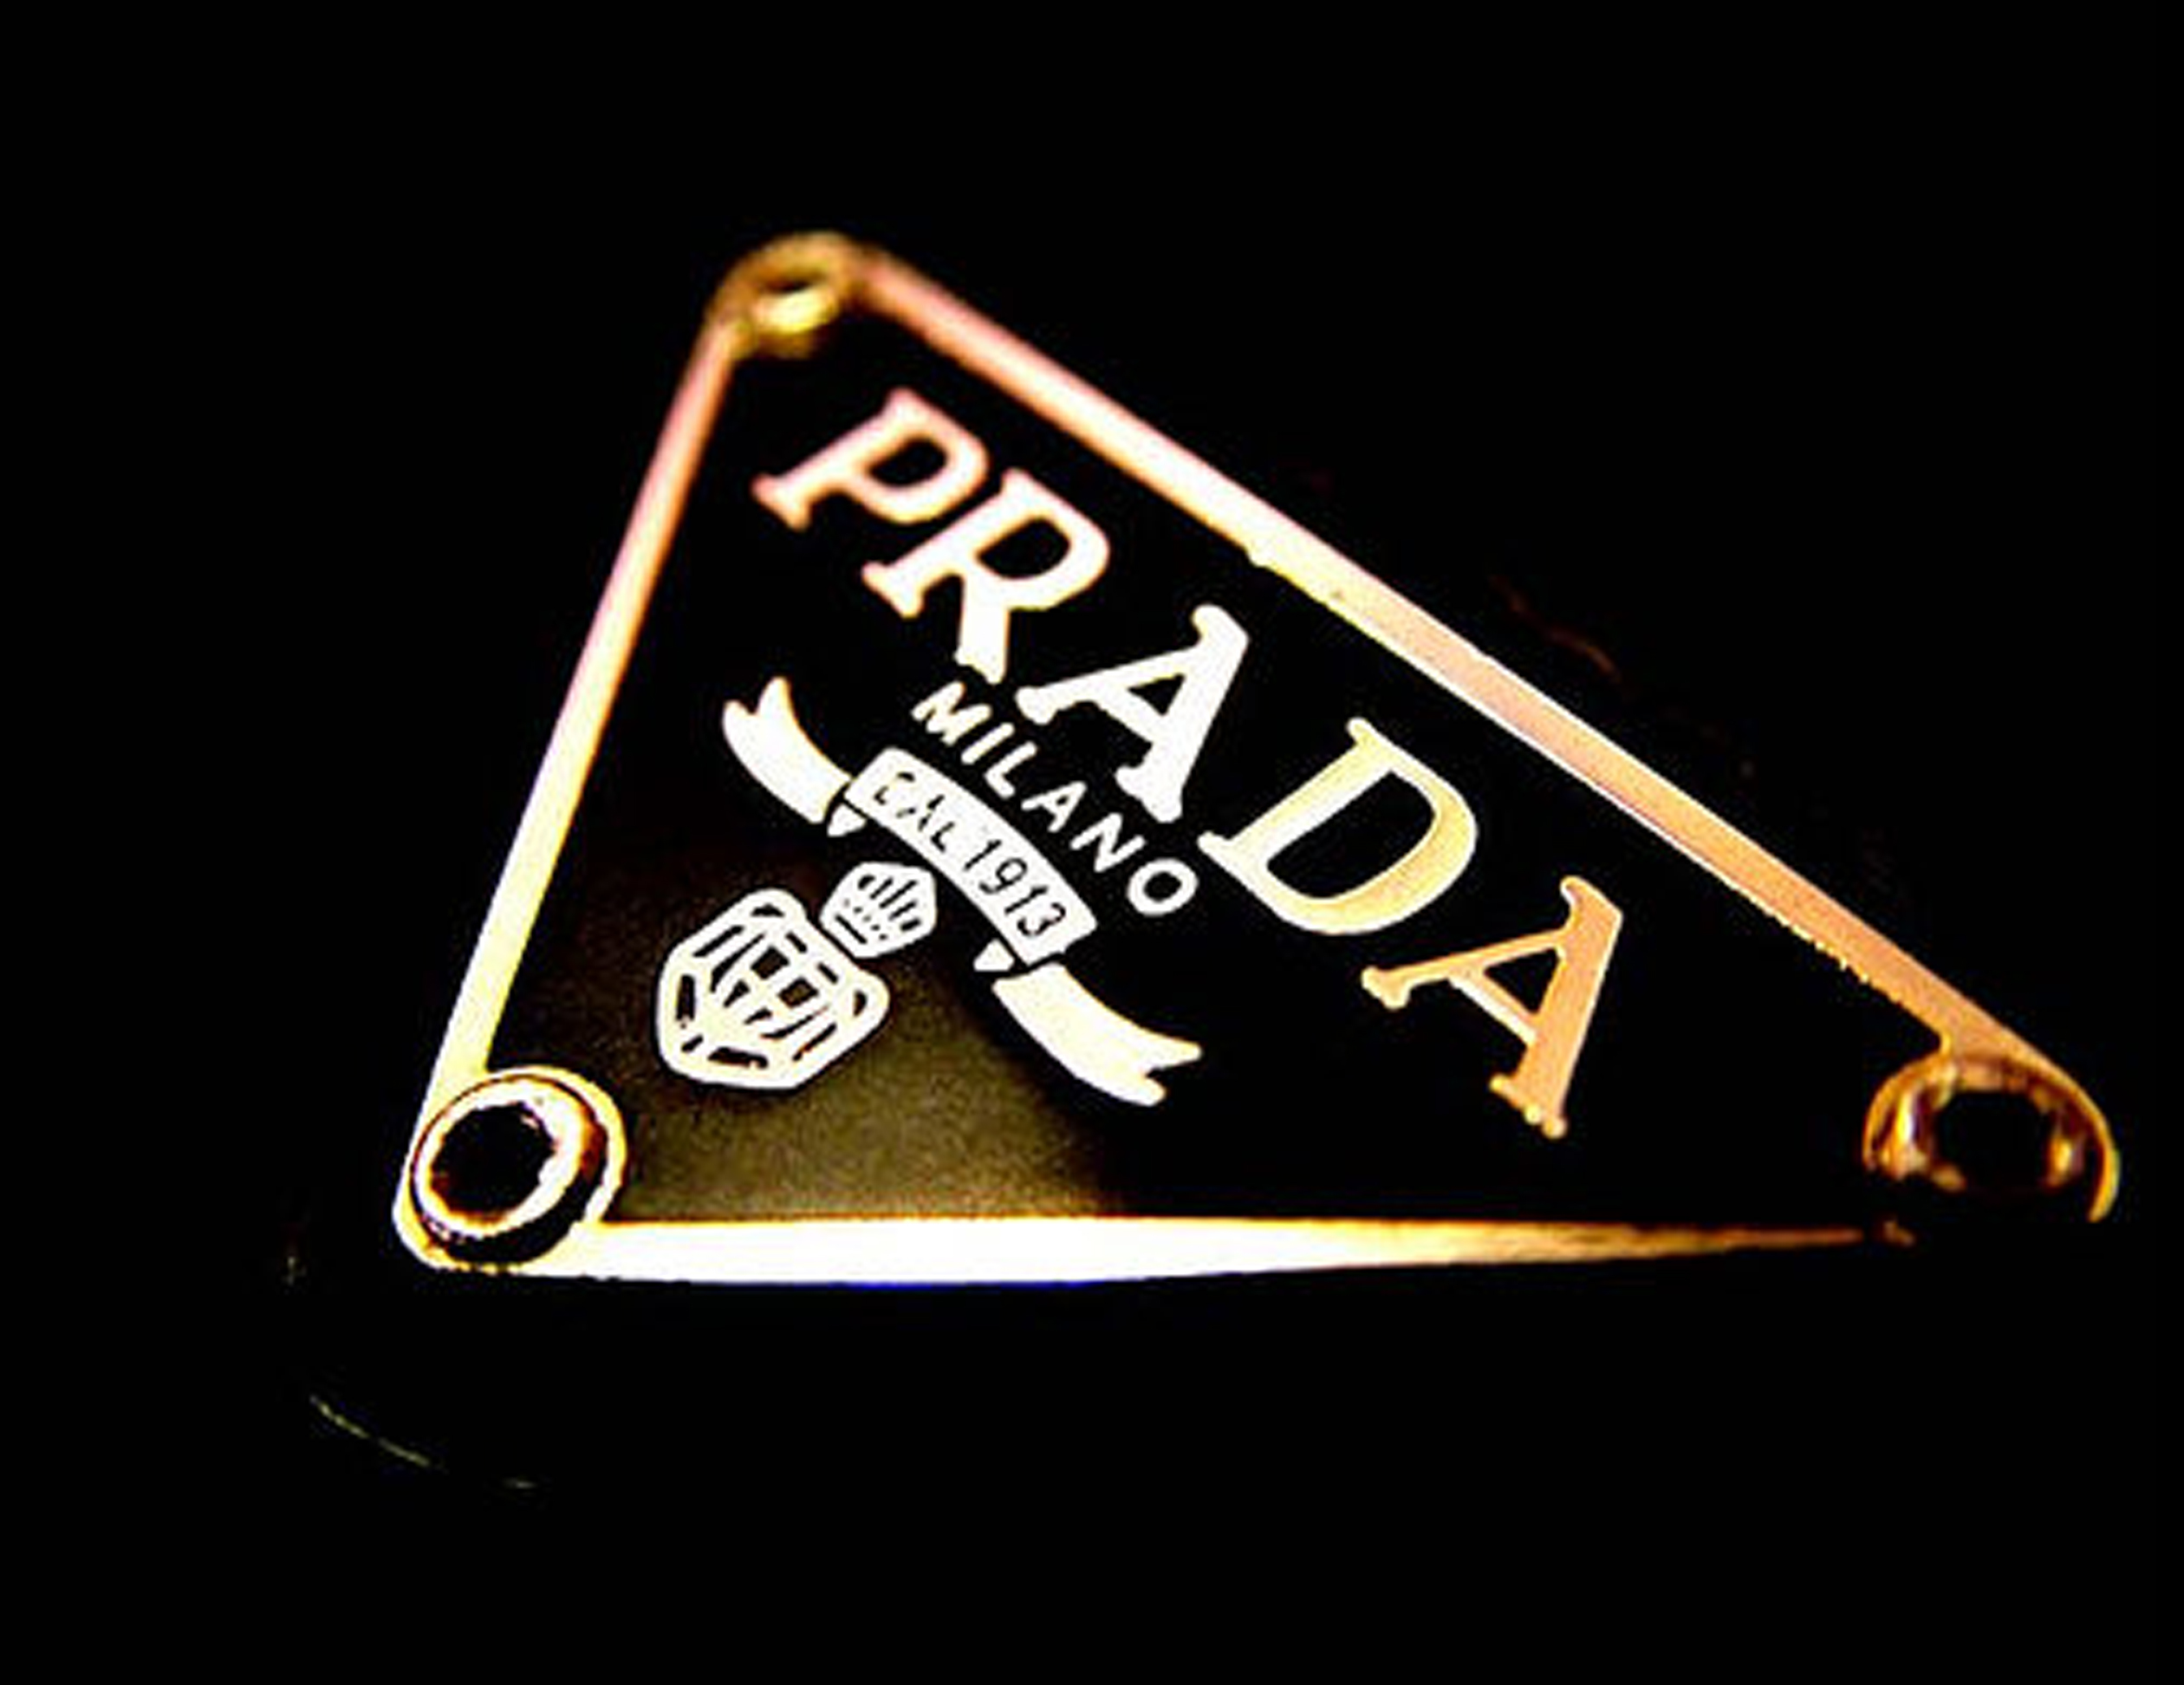 Prada Symbol Wallpaper